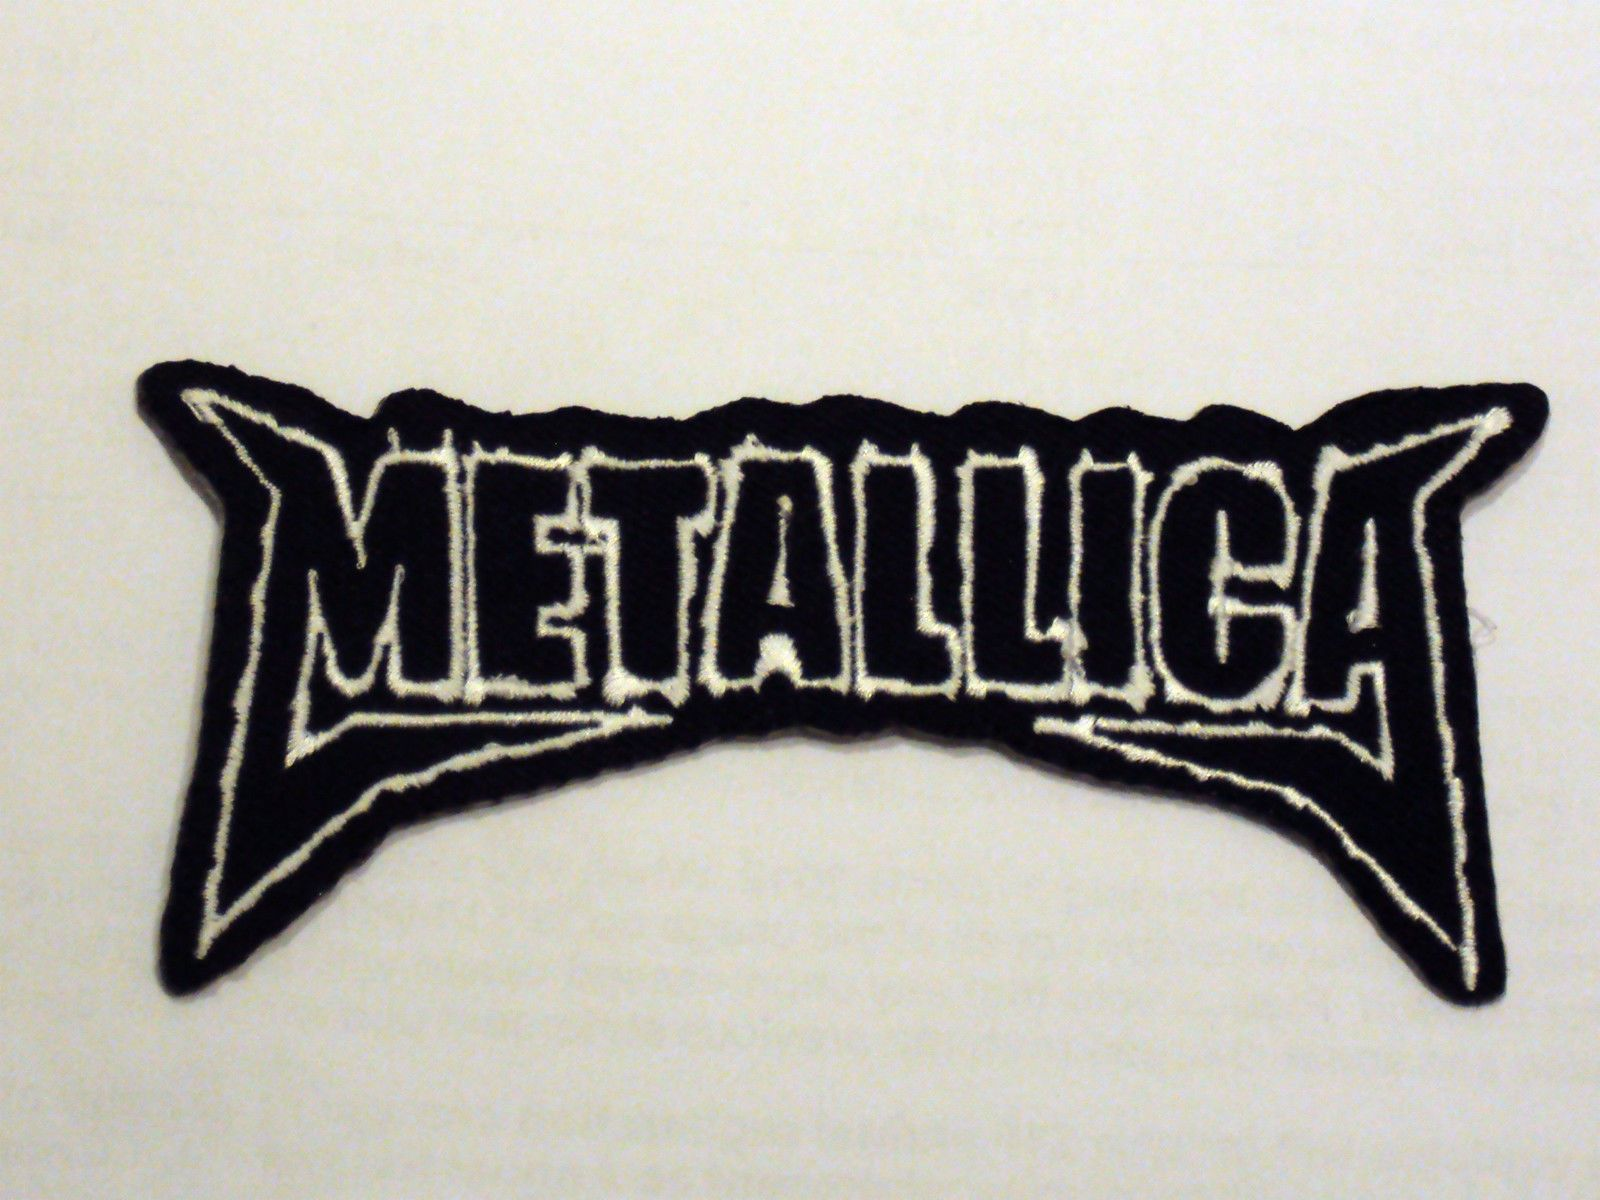 THE KILLERS AMERICAN ALTERNATIVE HEAVY ROCK MUSIC EMBROIDERED PATCH